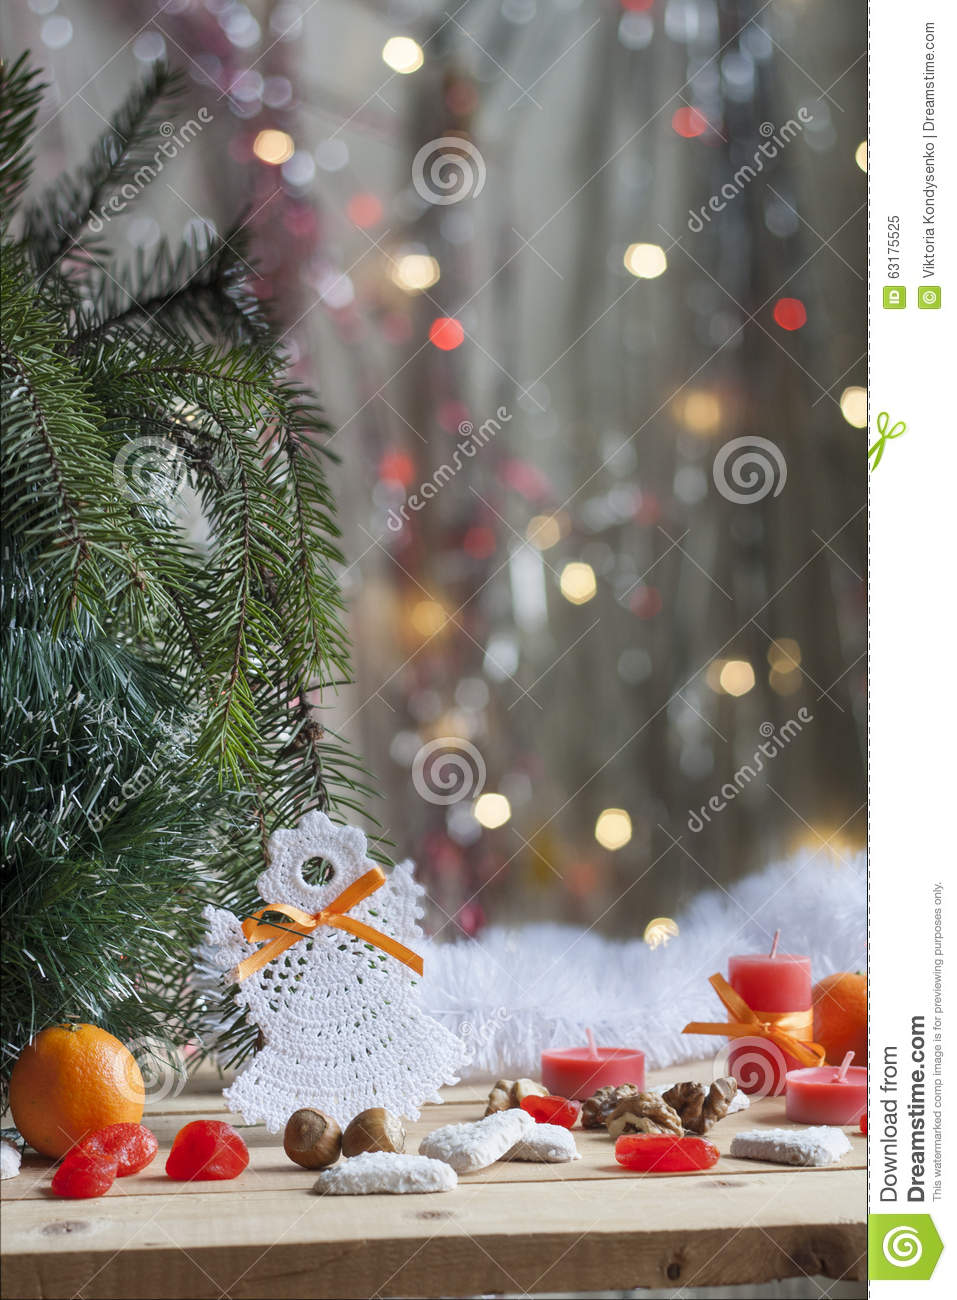 Christmas angel in tree and red candles on colorful